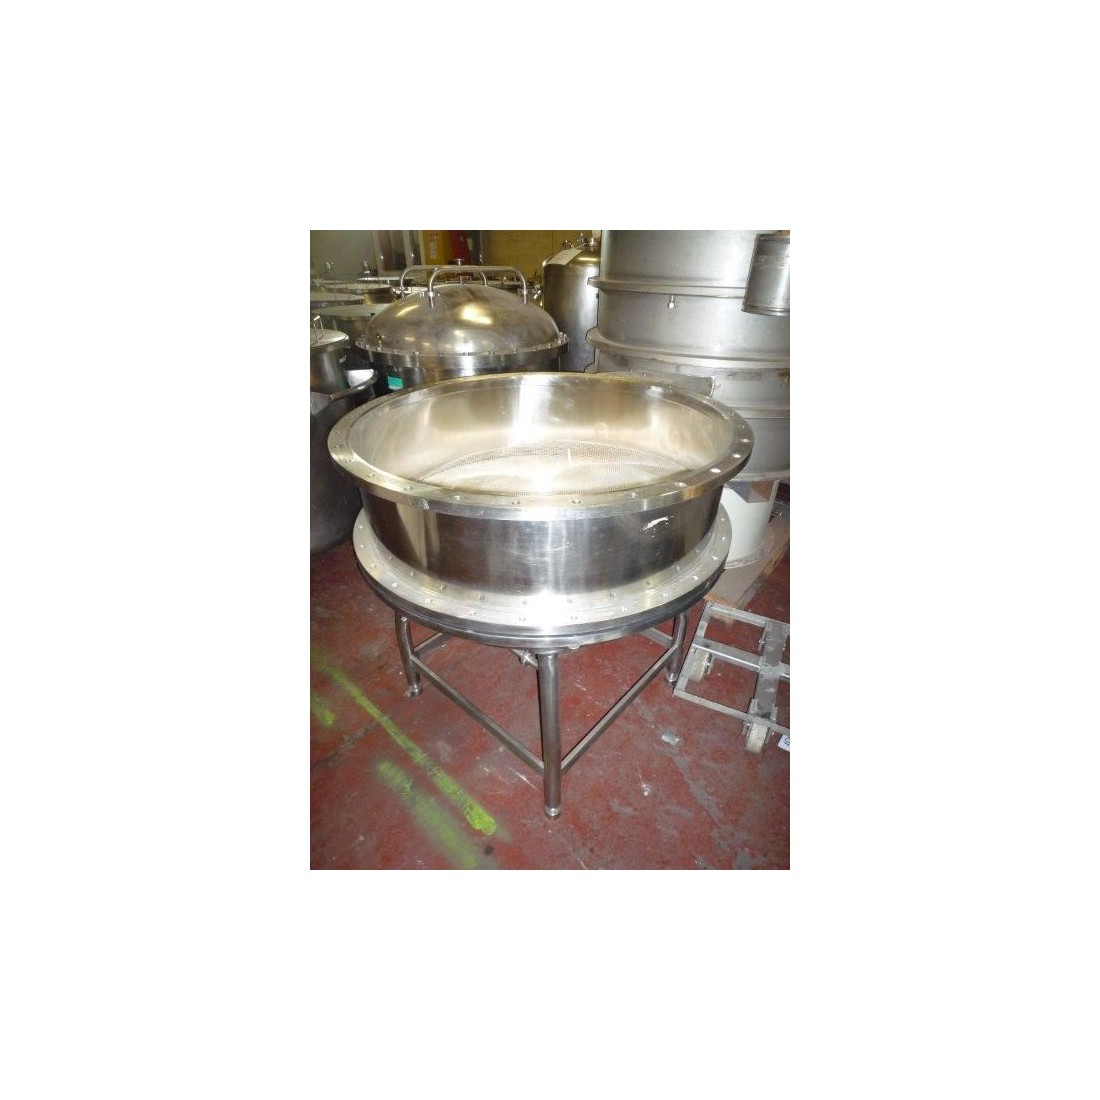 R6F1045  Stainless steel PHARMACIA FINE CHEMICALS monoplate filter Ø 1000 mm